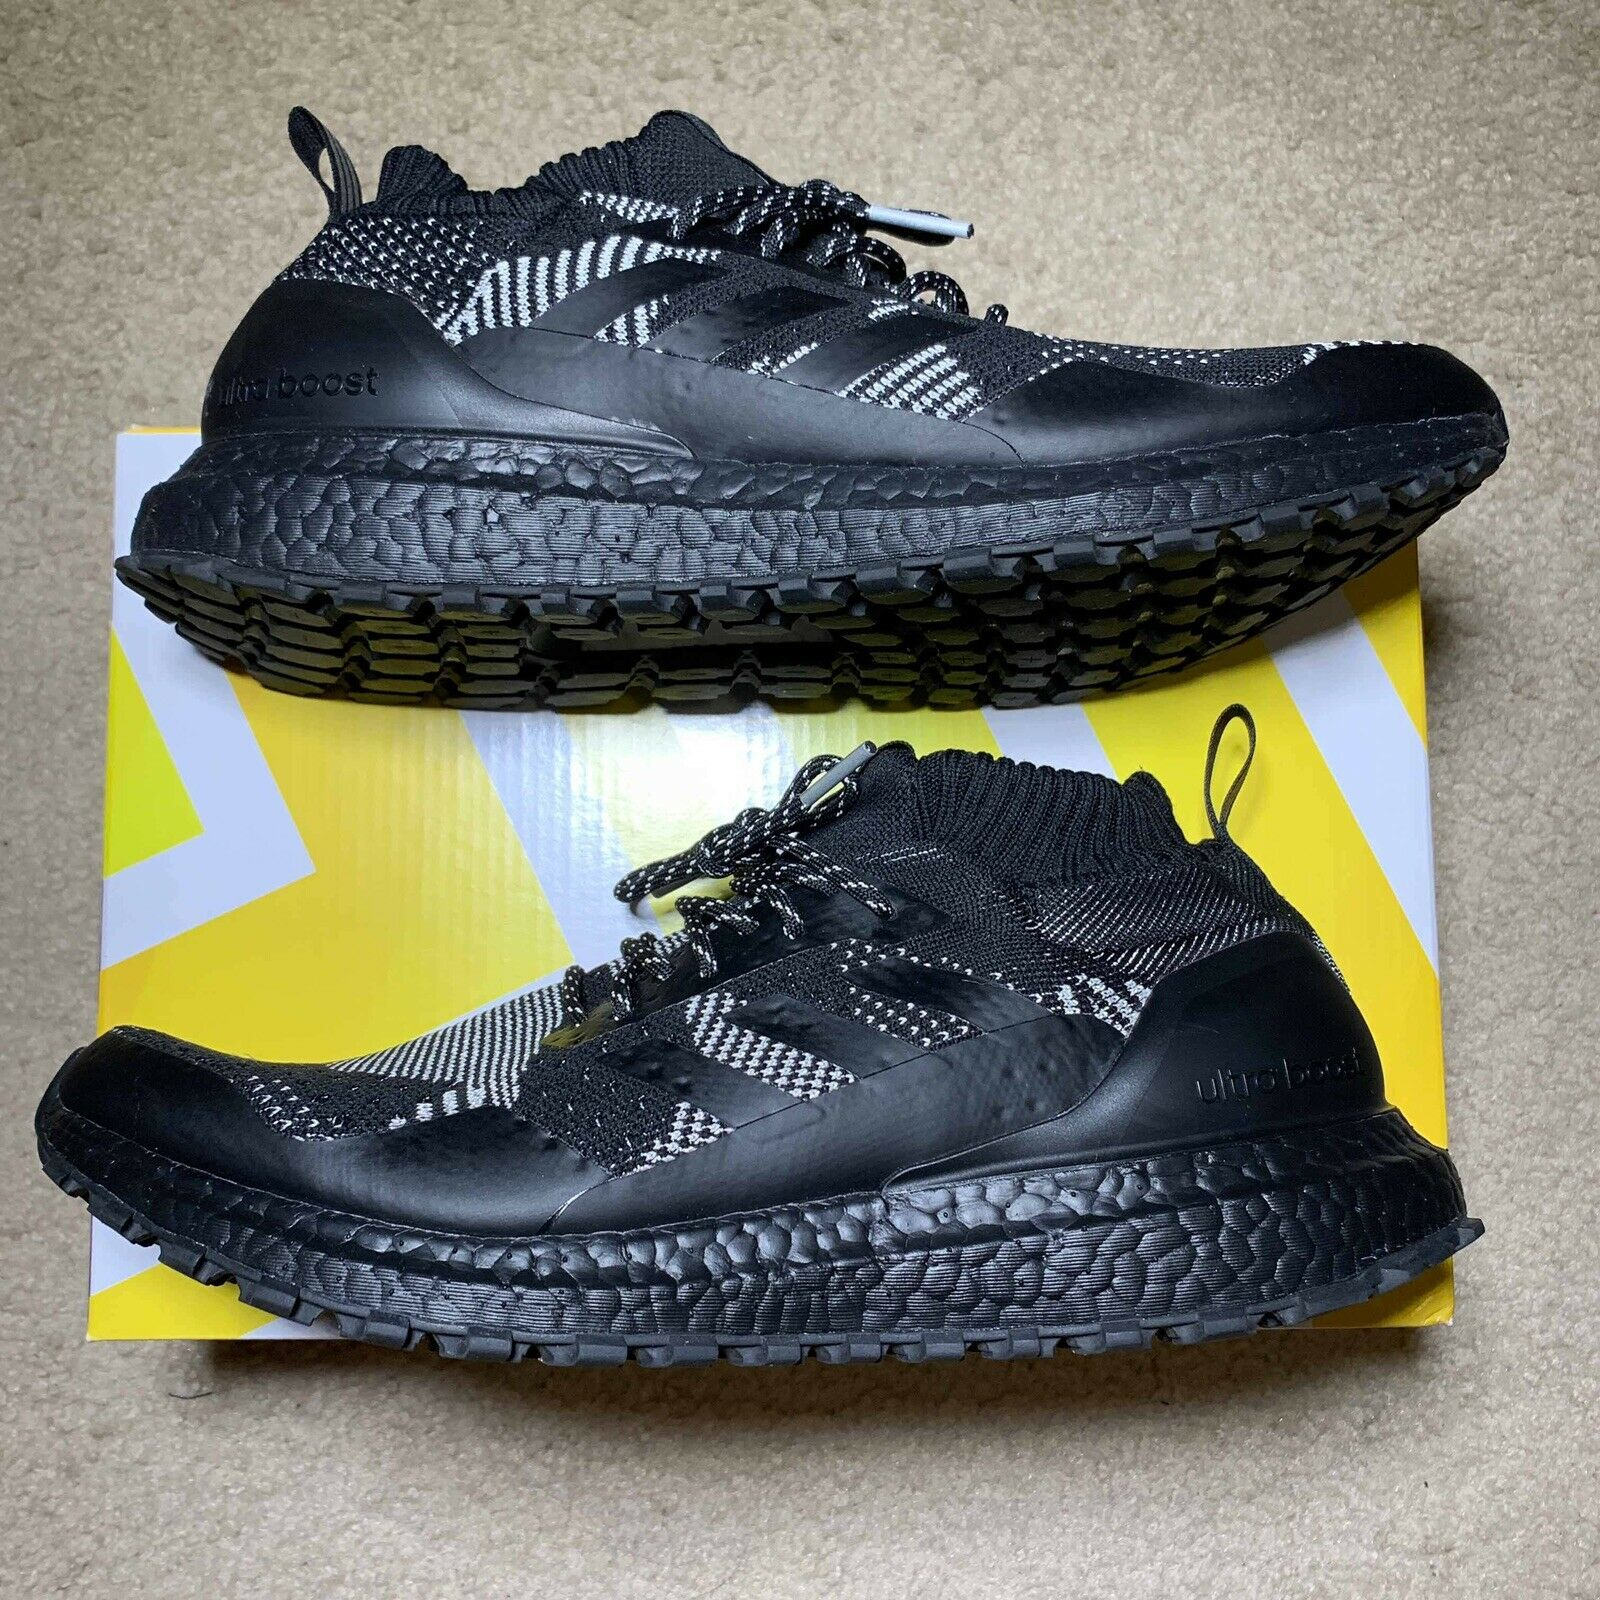 Pre-Owned Adidas Ultra Boost Mid Kith x Nonnative 3M Size 10